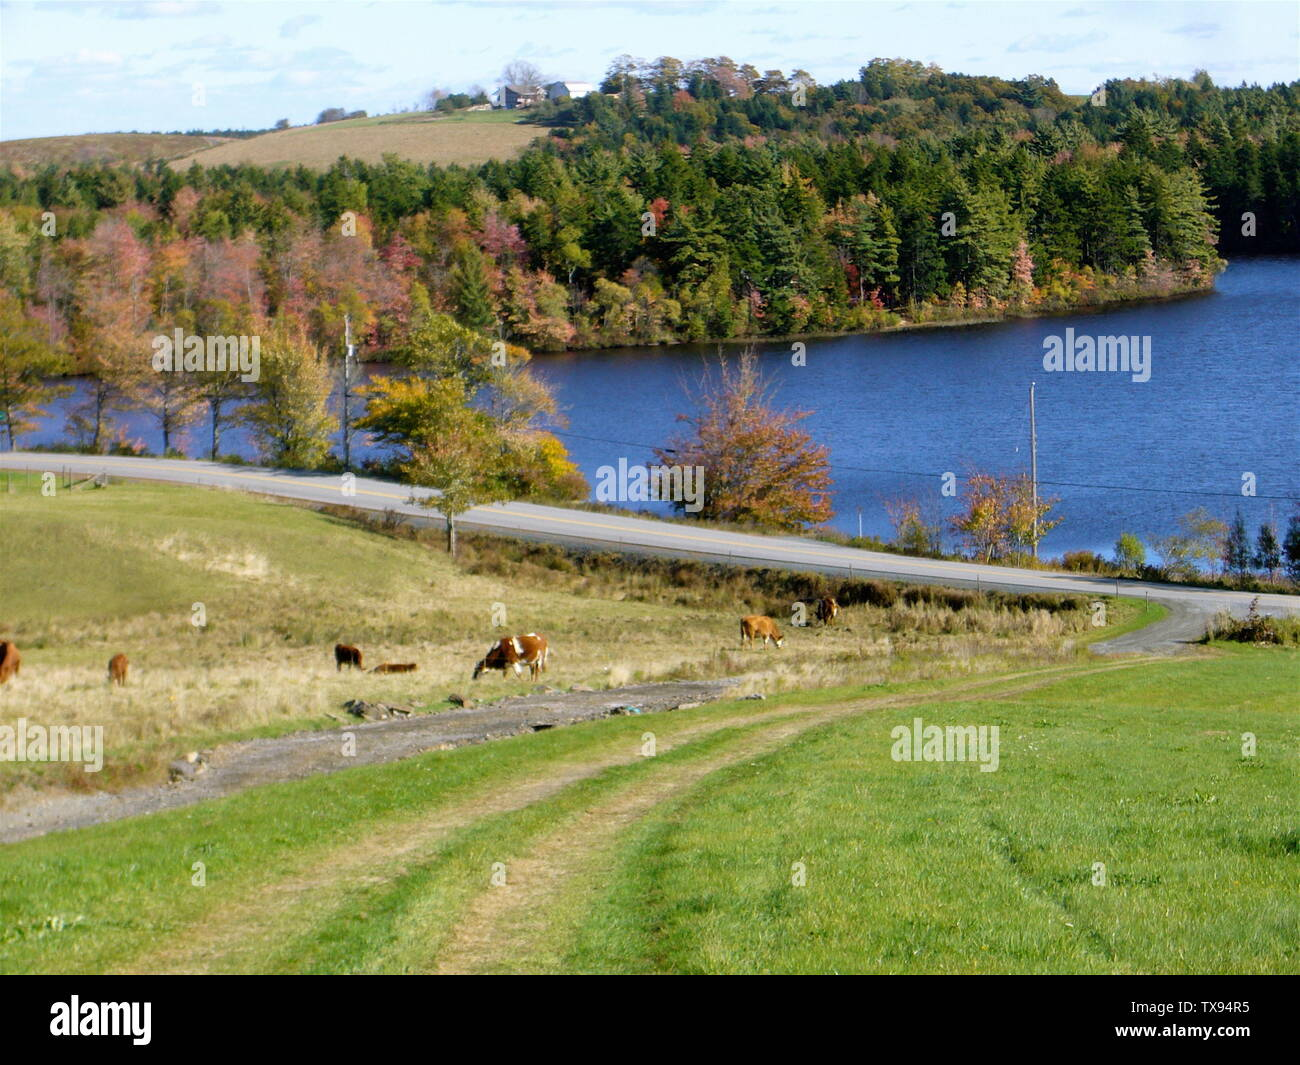 'A view of the Isaac Wile Hill across Matthew Lake, Waterloo, Nova Scotia.; 17 October 2007; Own work by the original uploader Blake Wile; Madereugeneandrew; ' - Stock Image